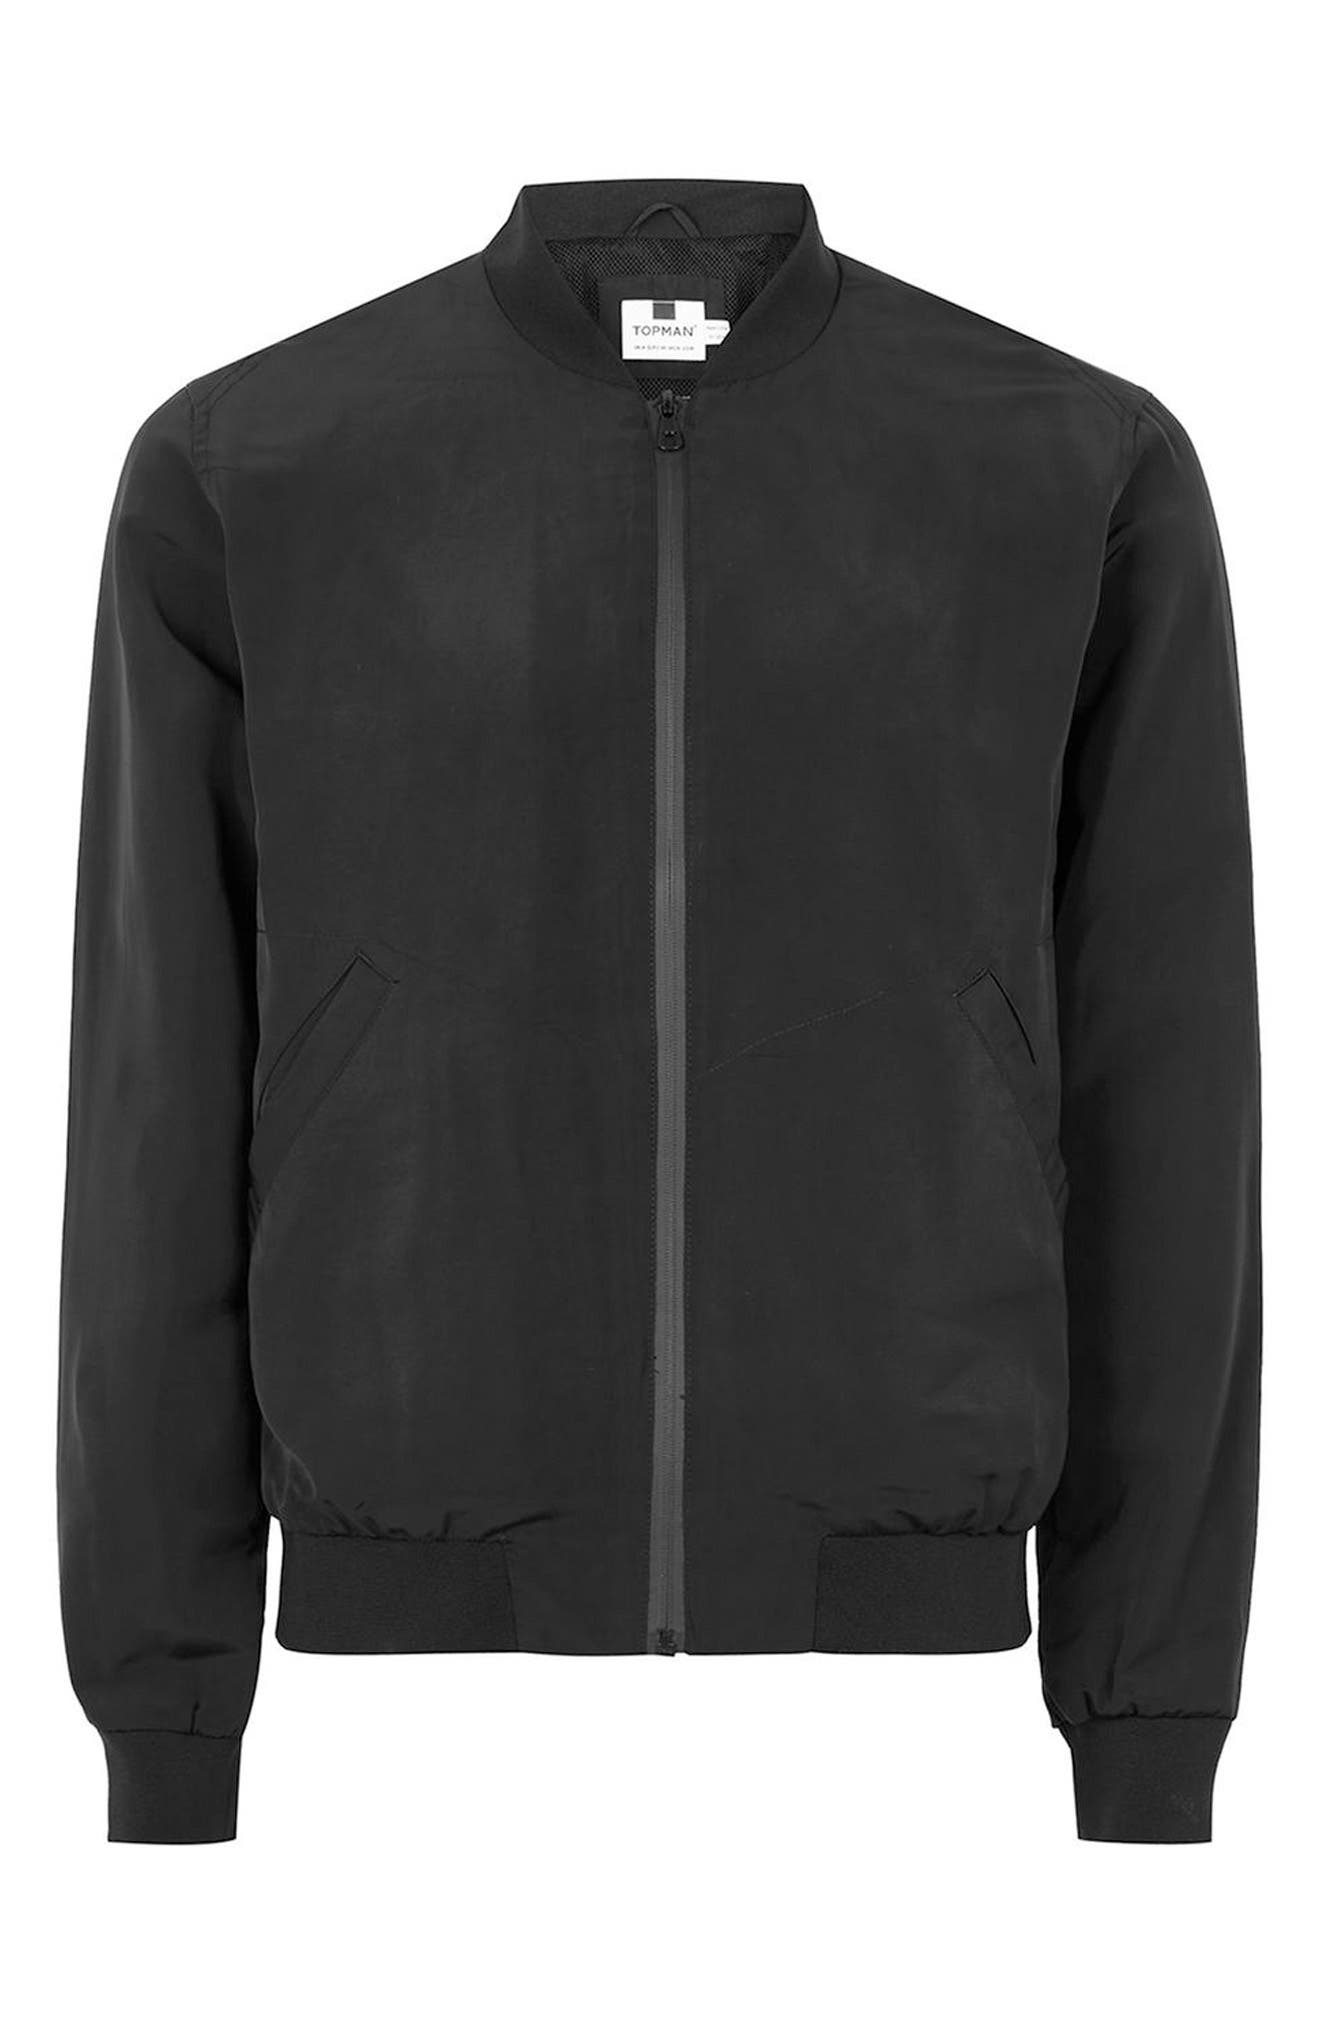 Mesh Lined Bomber Jacket,                             Alternate thumbnail 3, color,                             001